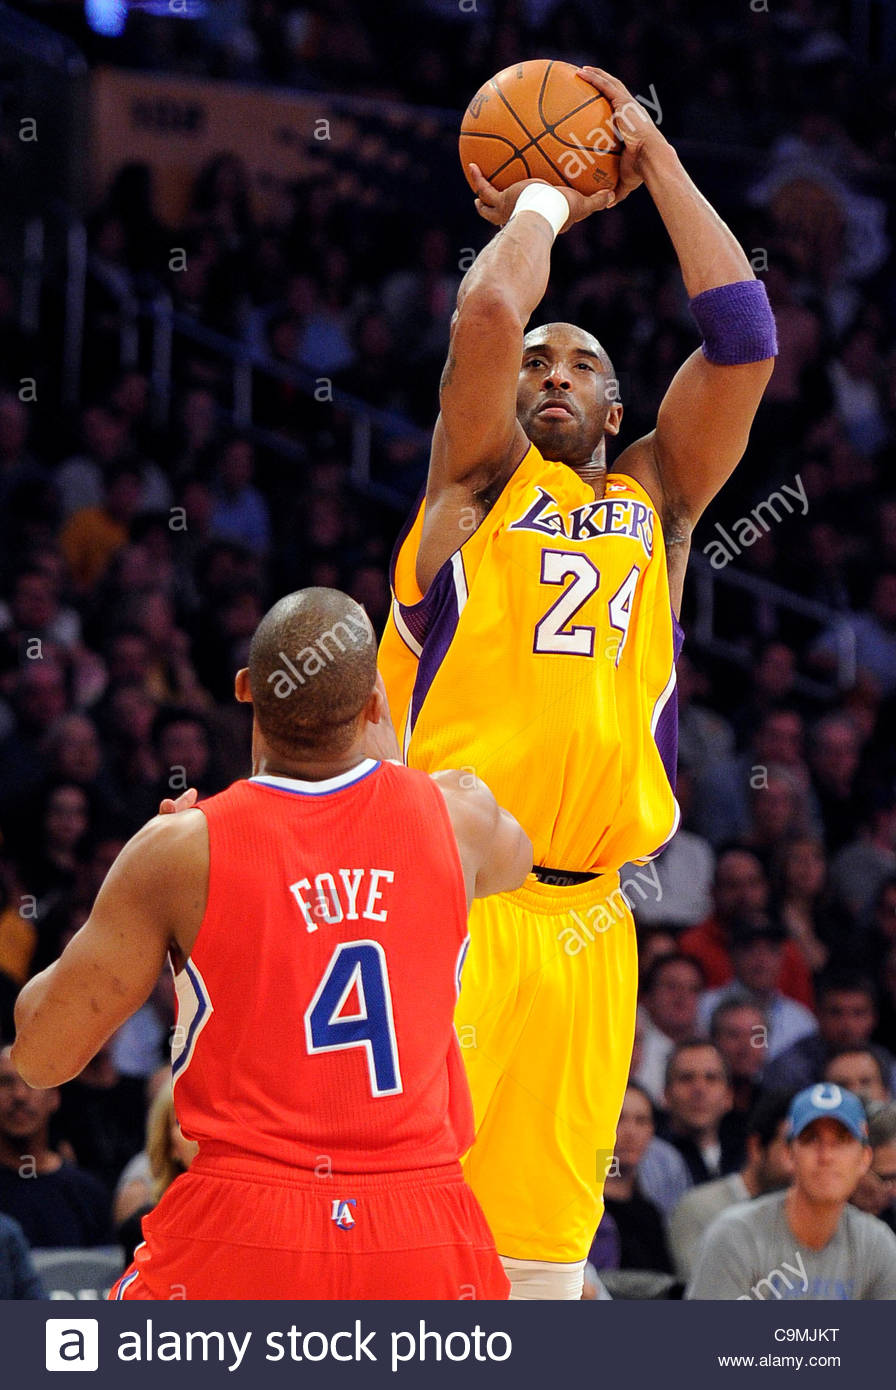 big sale 3e8c3 b8b83 The Lakers' Kobe Bryant (24) shoots as the Clippers Randy ...